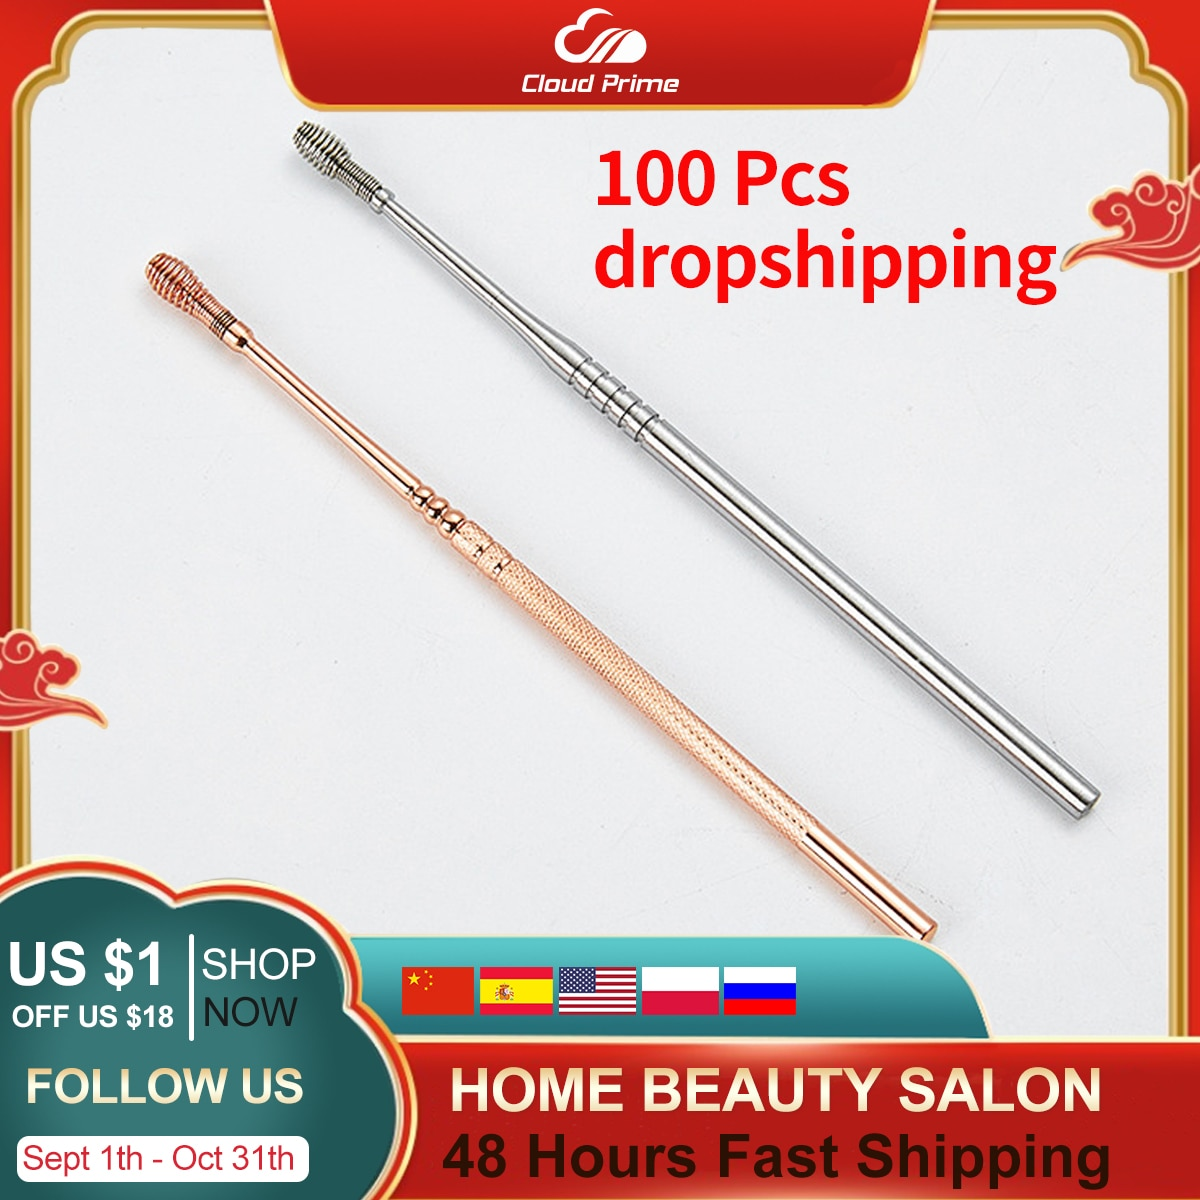 100Pcs Stainless Steel Spiral Ear Pick Spoon Ear Wax Removal Cleaner Ear Tool Multi-function Portable dropshipping wholesale